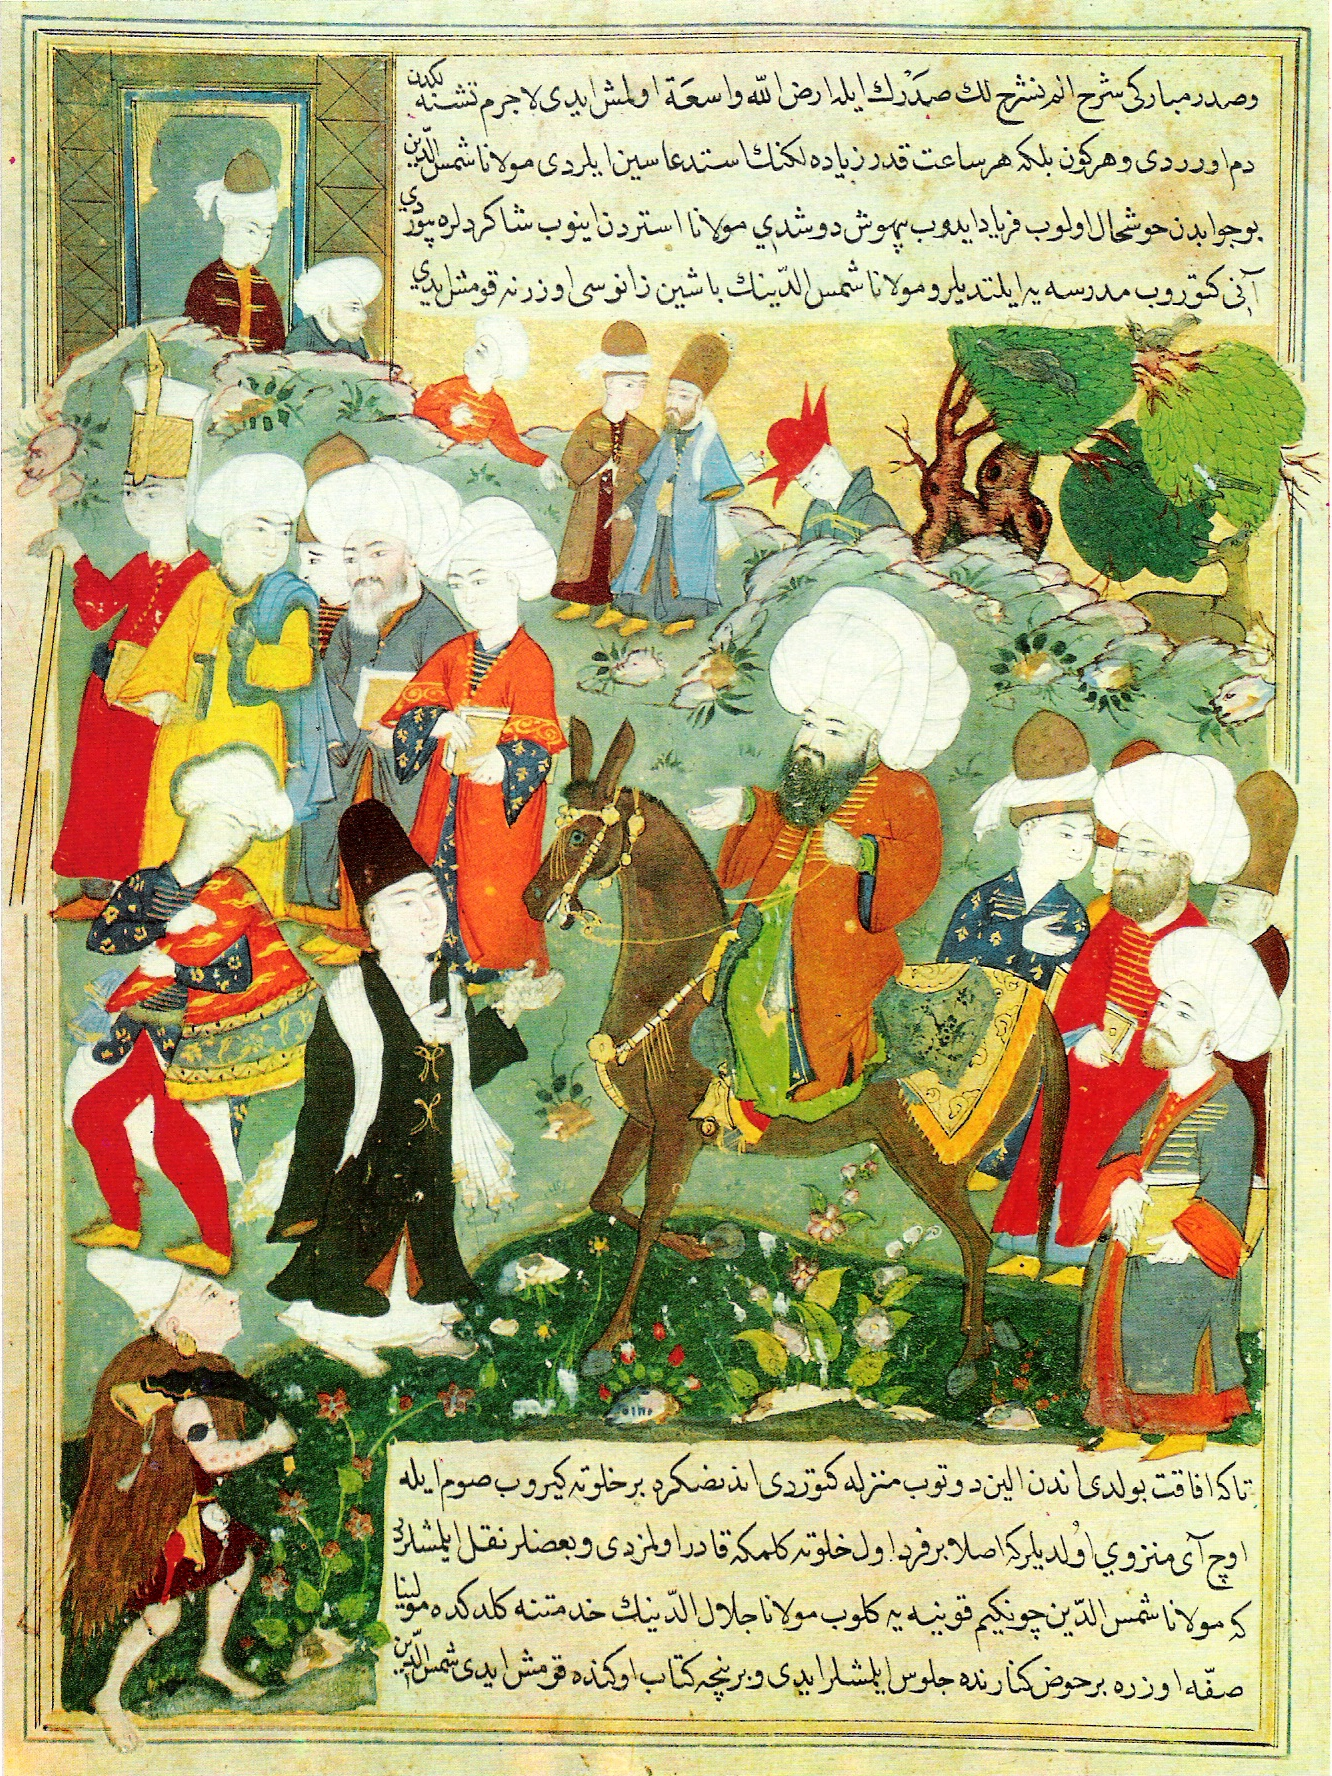 An Ottoman era manuscript depicting